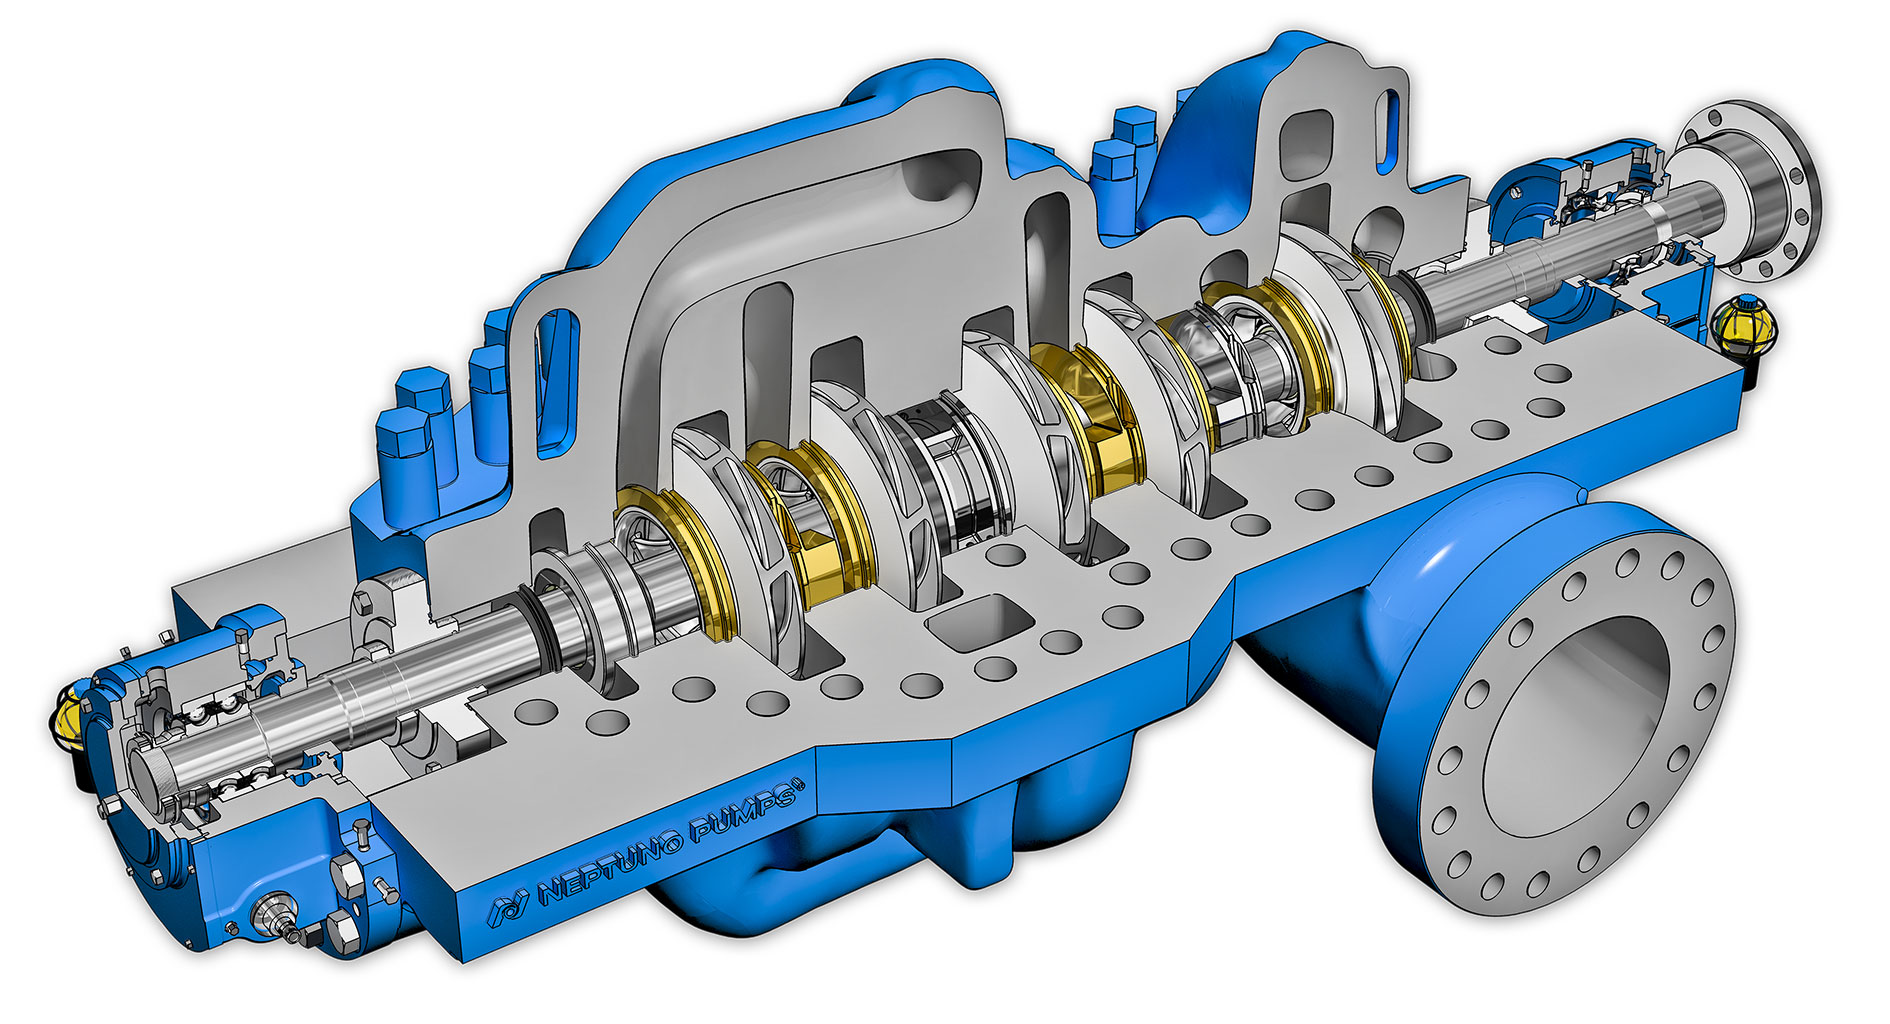 Axial split case pumps are ideal for high-pressure, corrosive applications